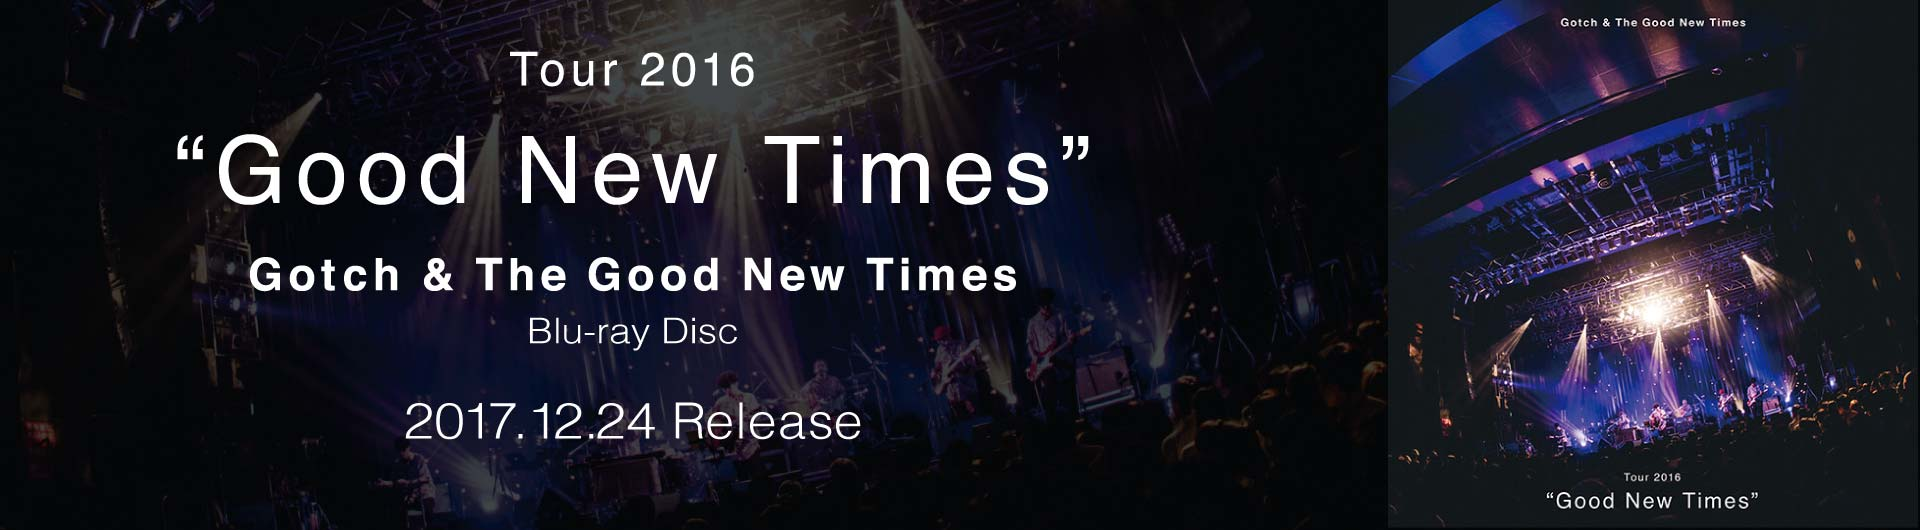 "Tour 2016 ""Good New Times"" / Gotch & The Good New Times"